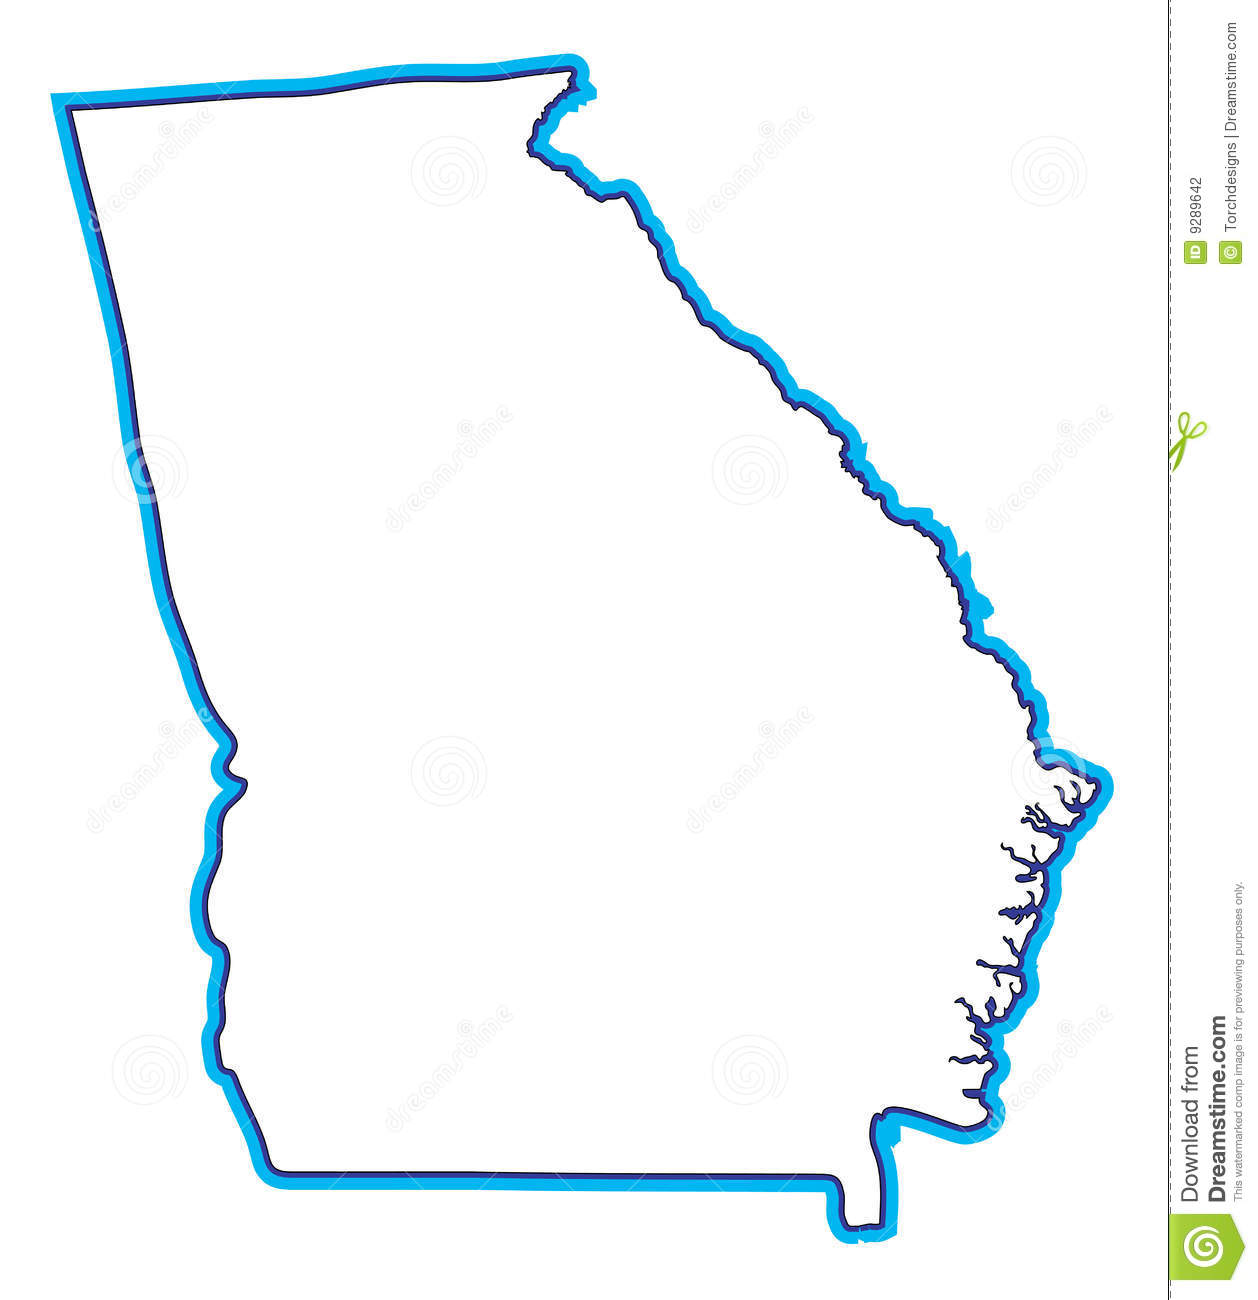 1258x1300 Clipart Outline Of Georgia